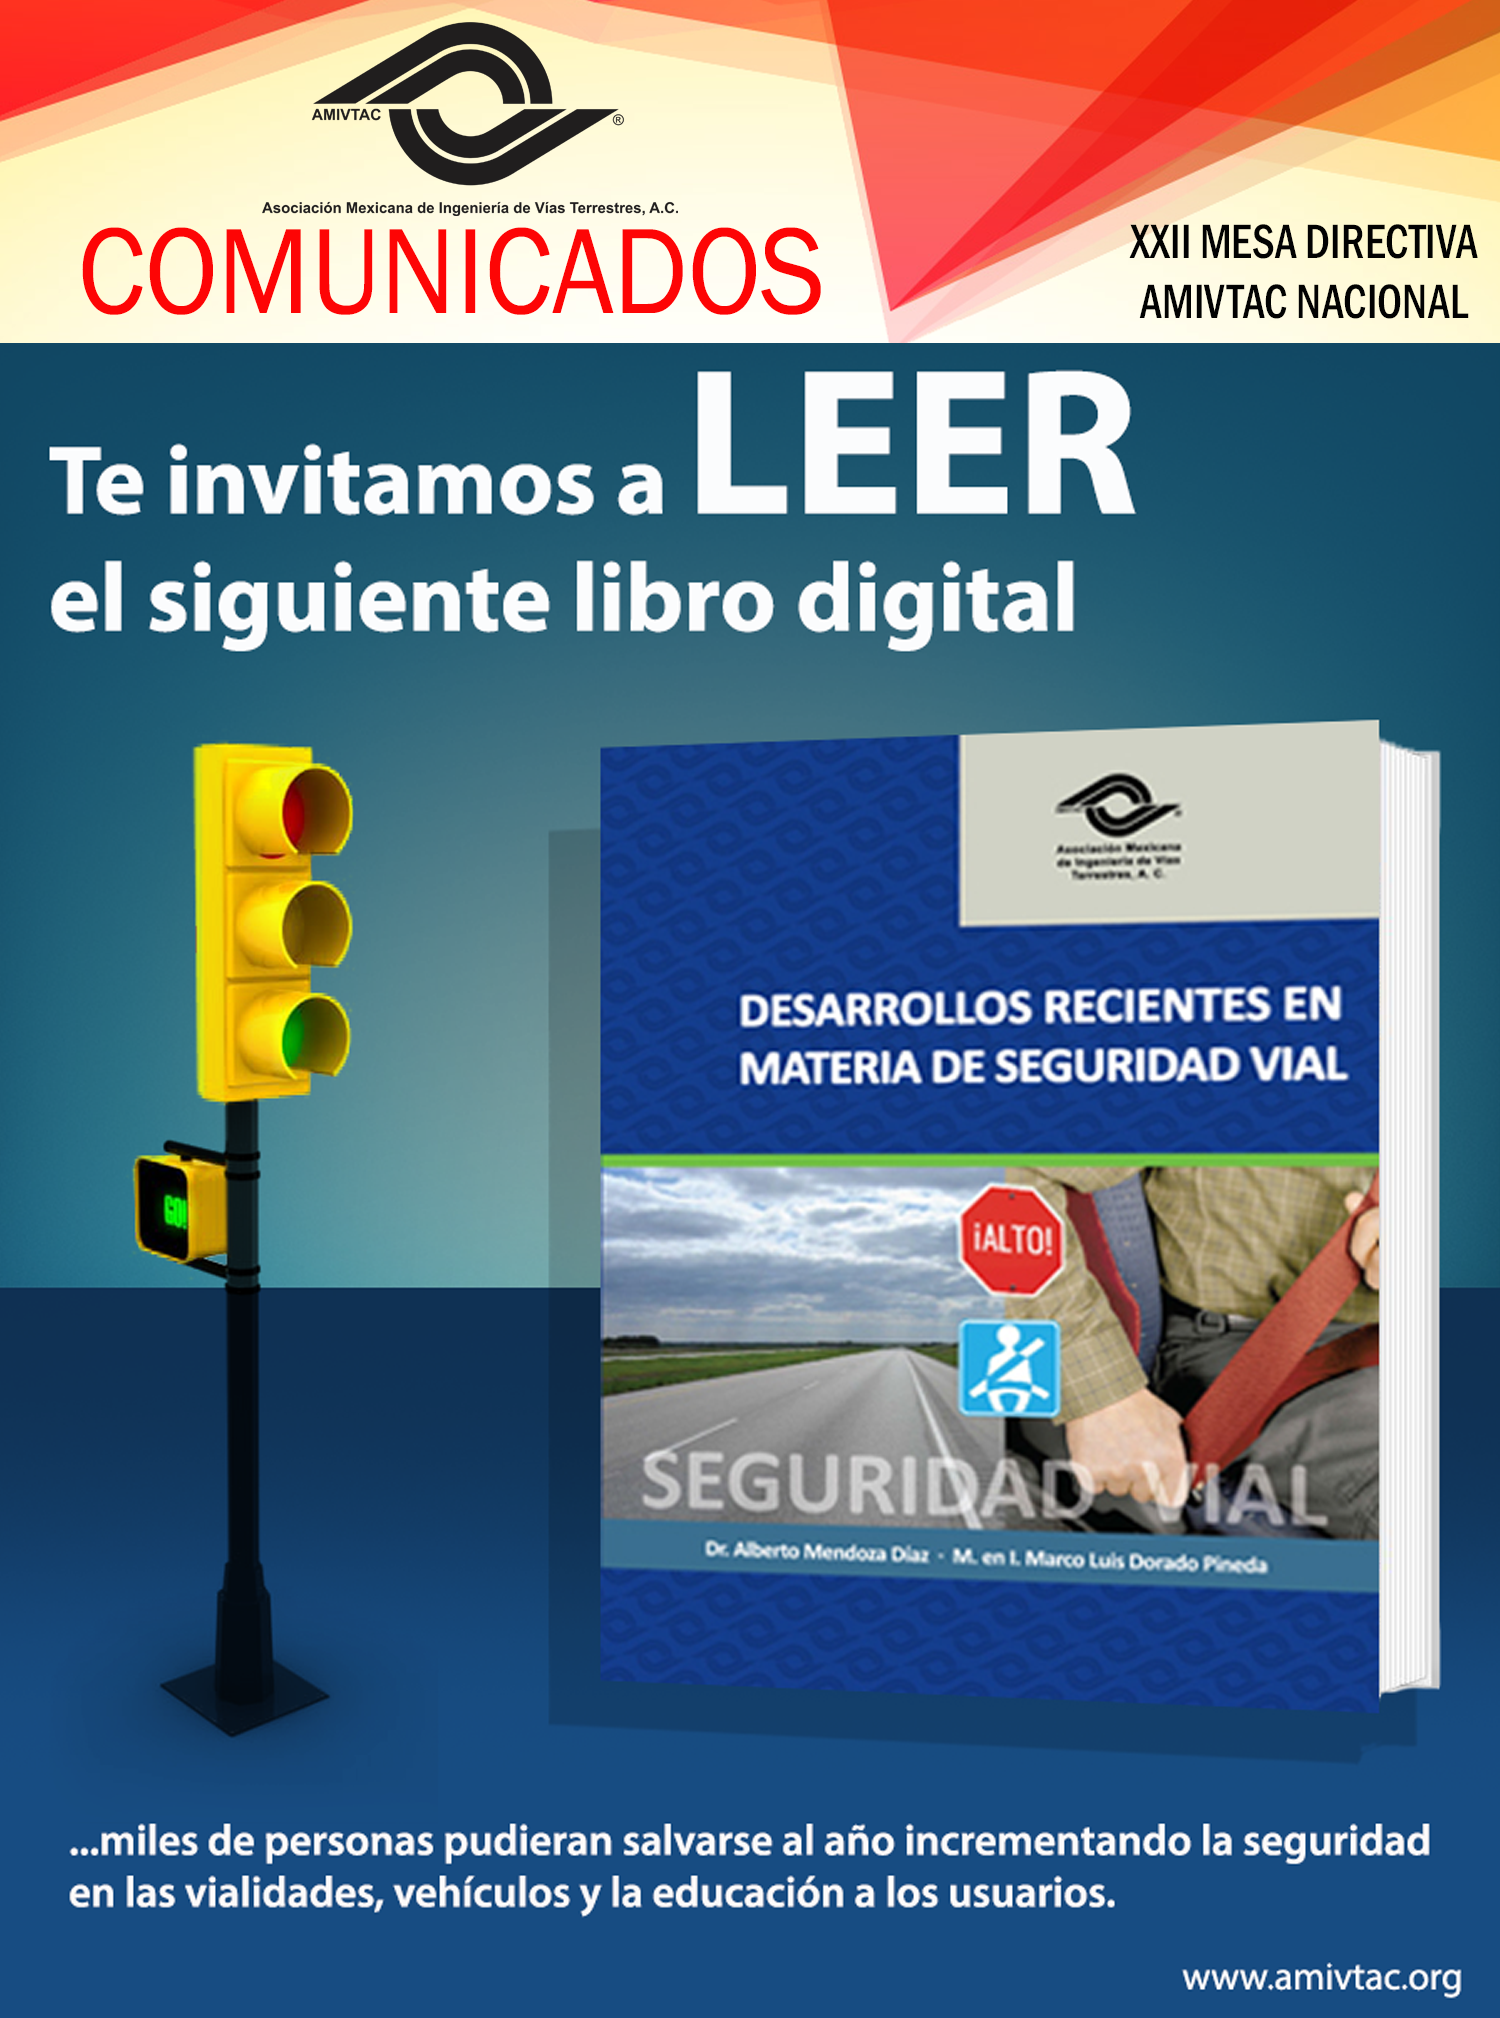 Libros Digital No Te Pierdas La Interesante Lectura Del Libro Digital